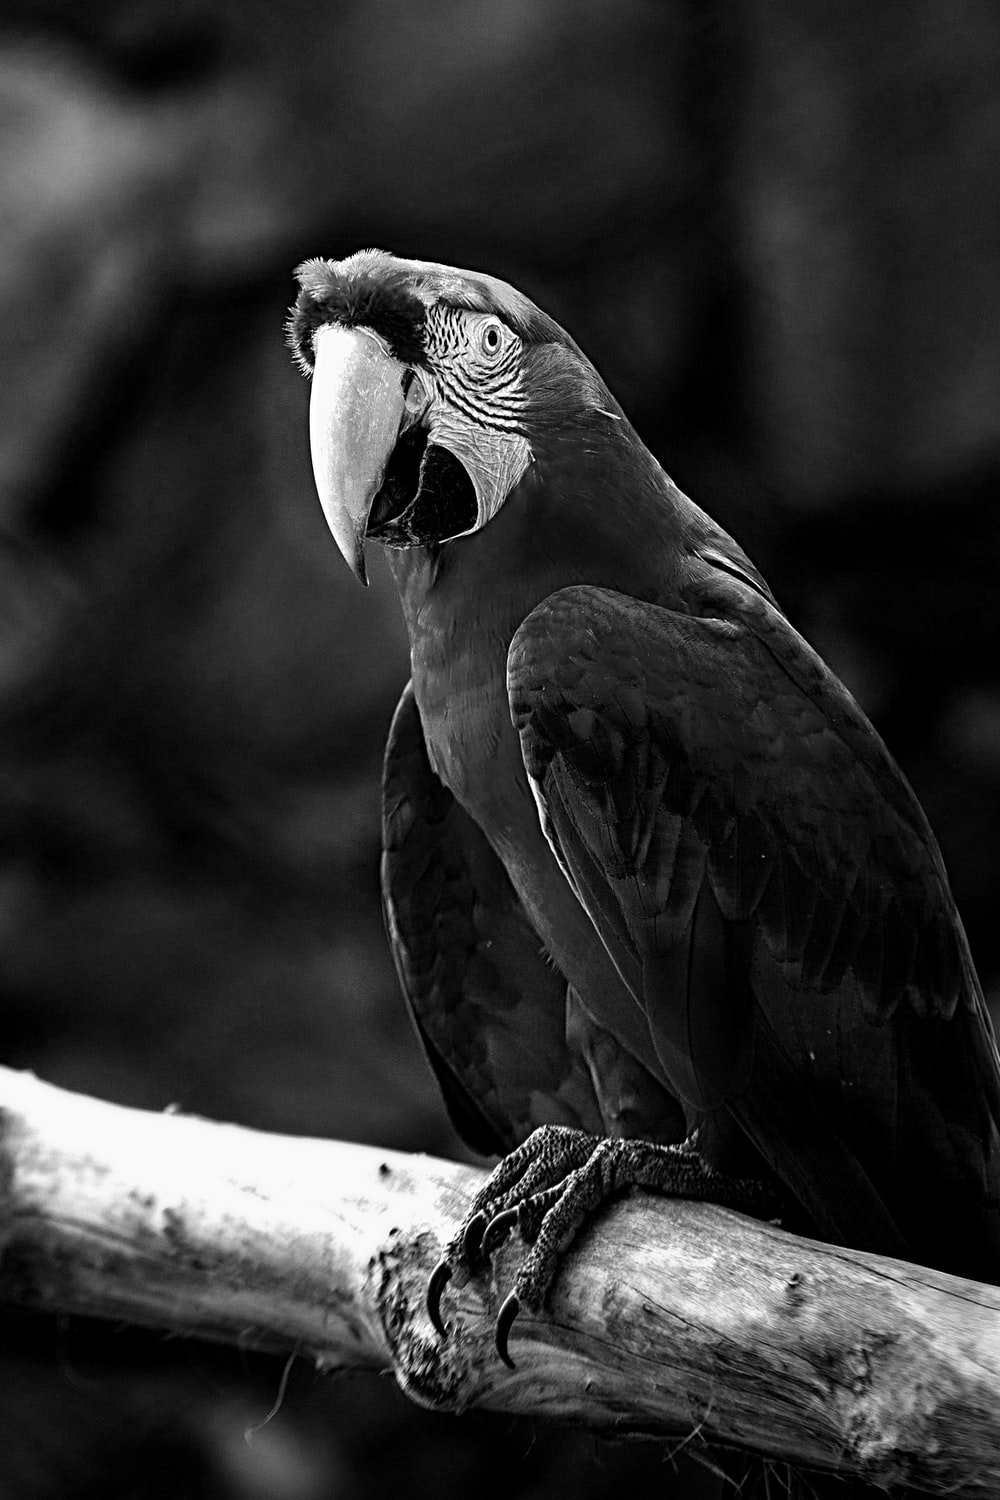 grayscale photo of parrot on tree branch